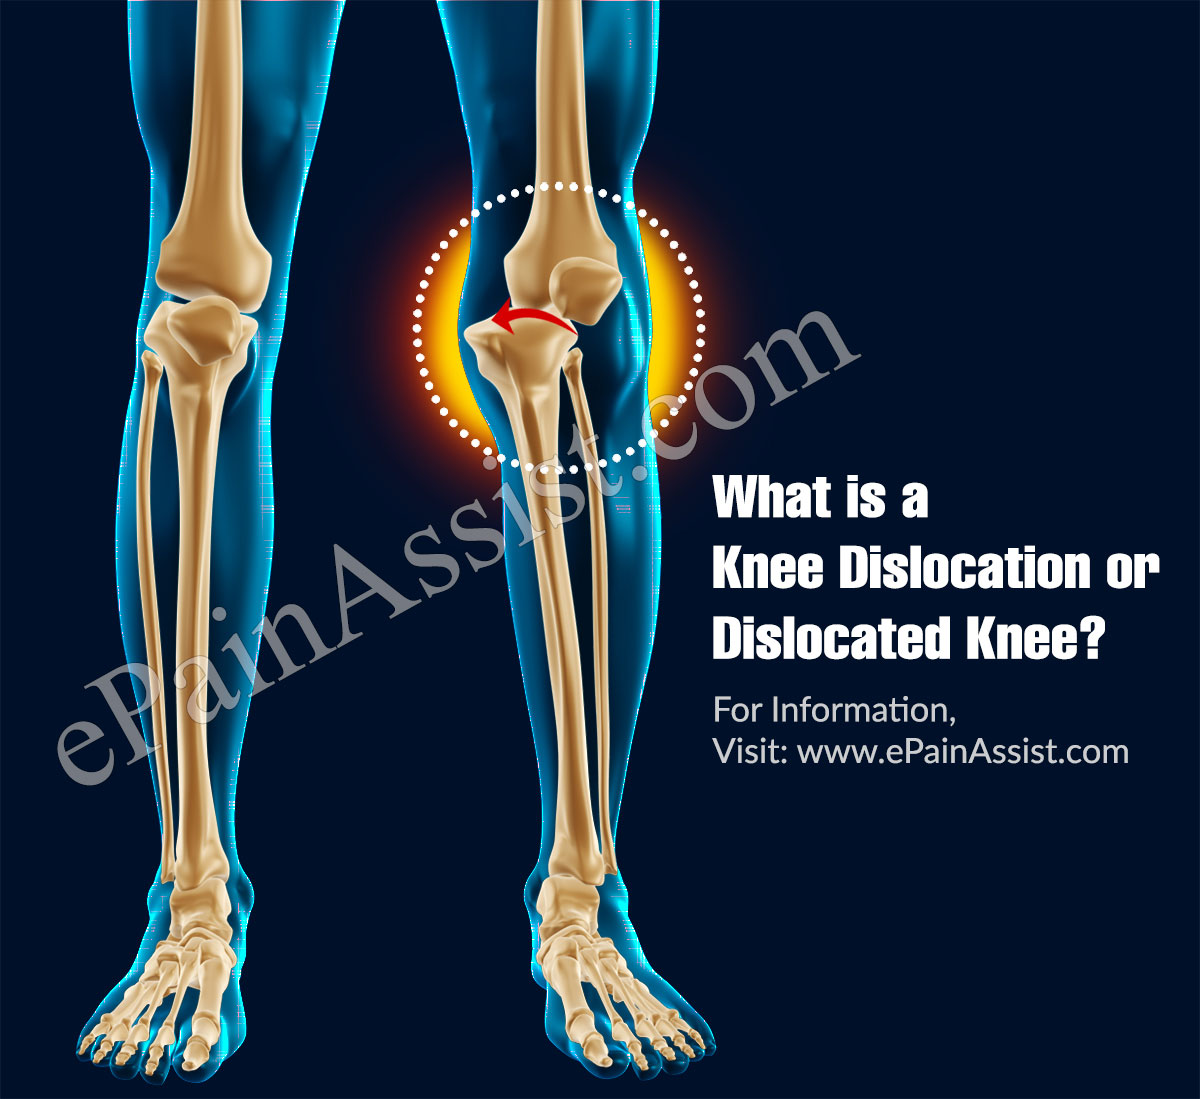 What is a Knee Dislocation or Dislocated Knee?